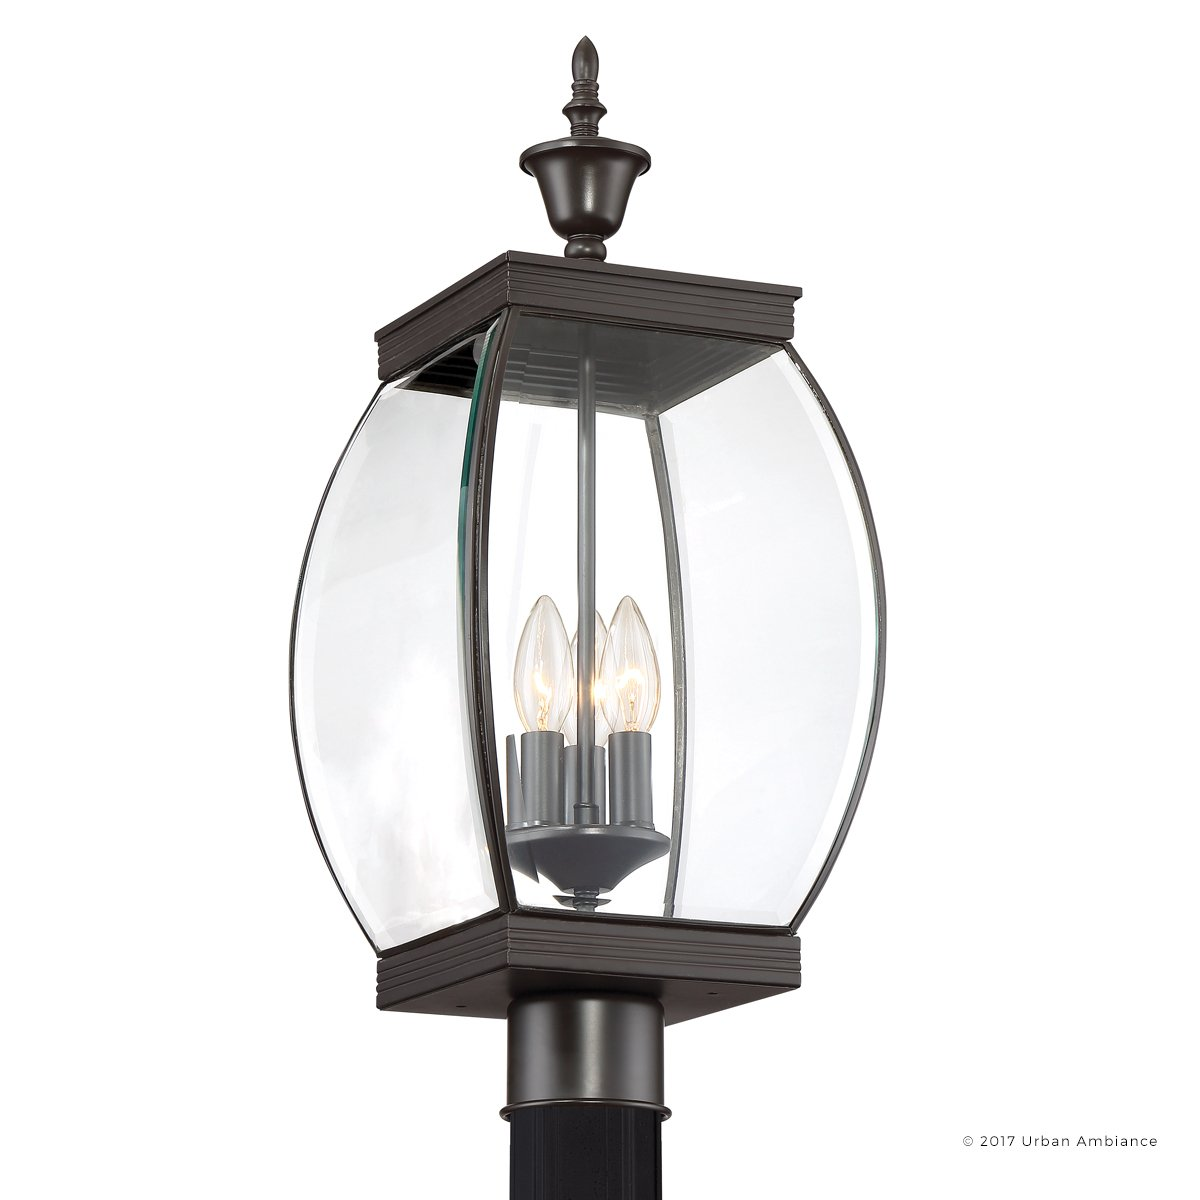 Luxury Colonial Outdoor Post Light, Large Size: 22''H x 9''W, with Transitional Style Elements, Bowed Design, Gorgeous Dark Medieval Bronze Finish and Beveled Glass, UQL1174 by Urban Ambiance by Urban Ambiance